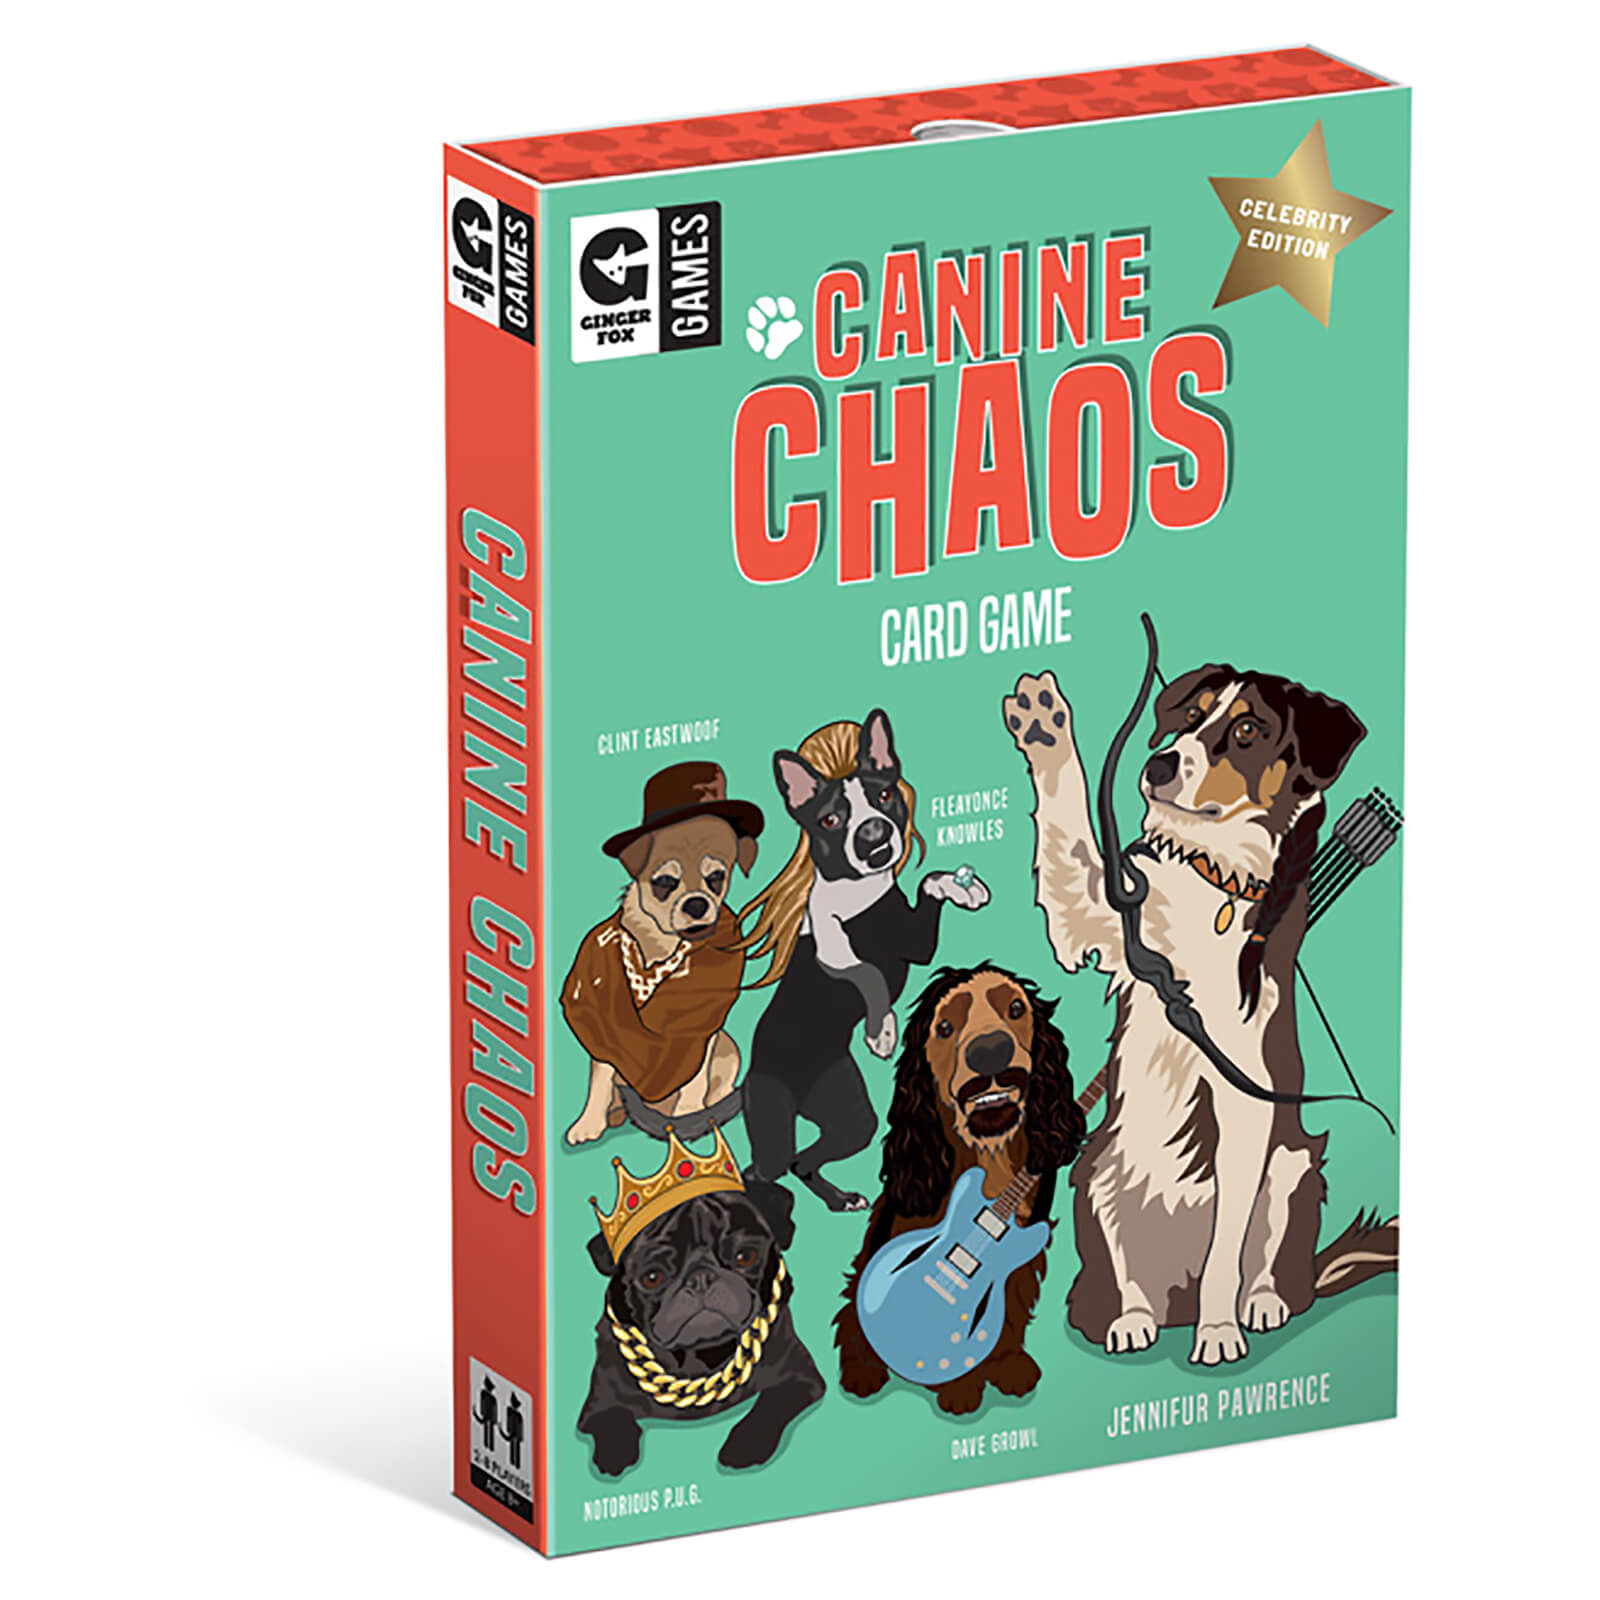 Image of Canine Chaos Card Game